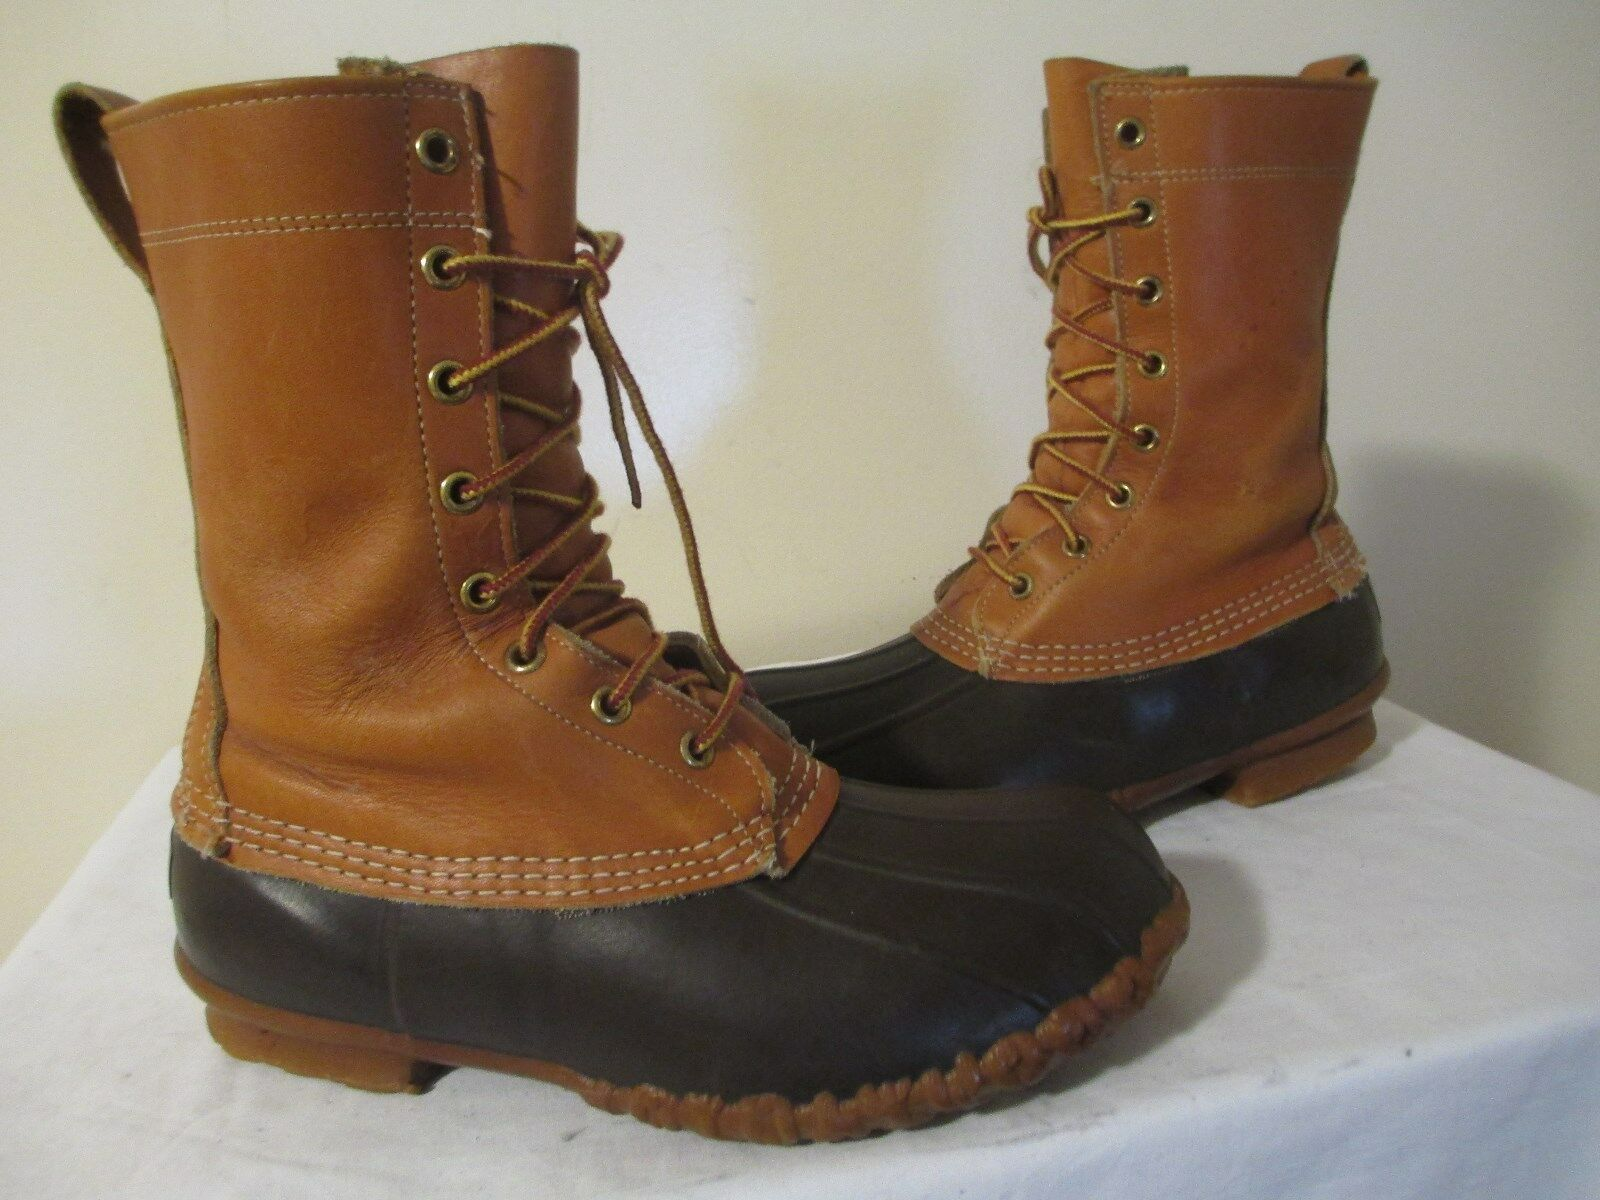 LL BEAN DUCK BOOTS CLASSIC MAINE HUNTING 8 EYELETS LACE UP Uomo SHOES MADE IN USA